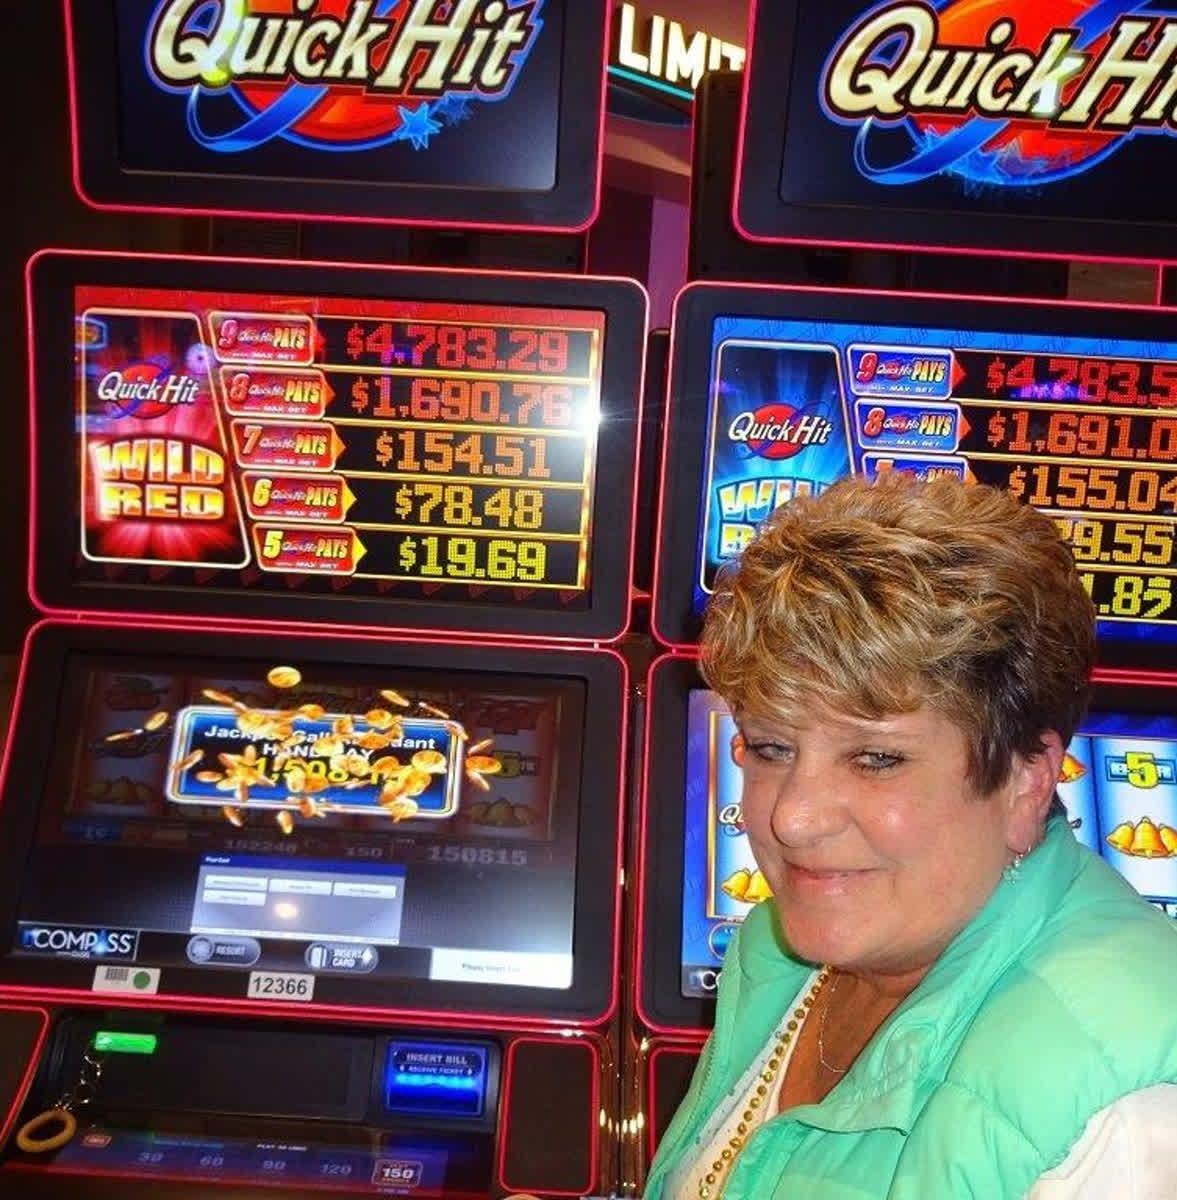 Congratulations to Bev who hit a 1508 jackpot on the Wild